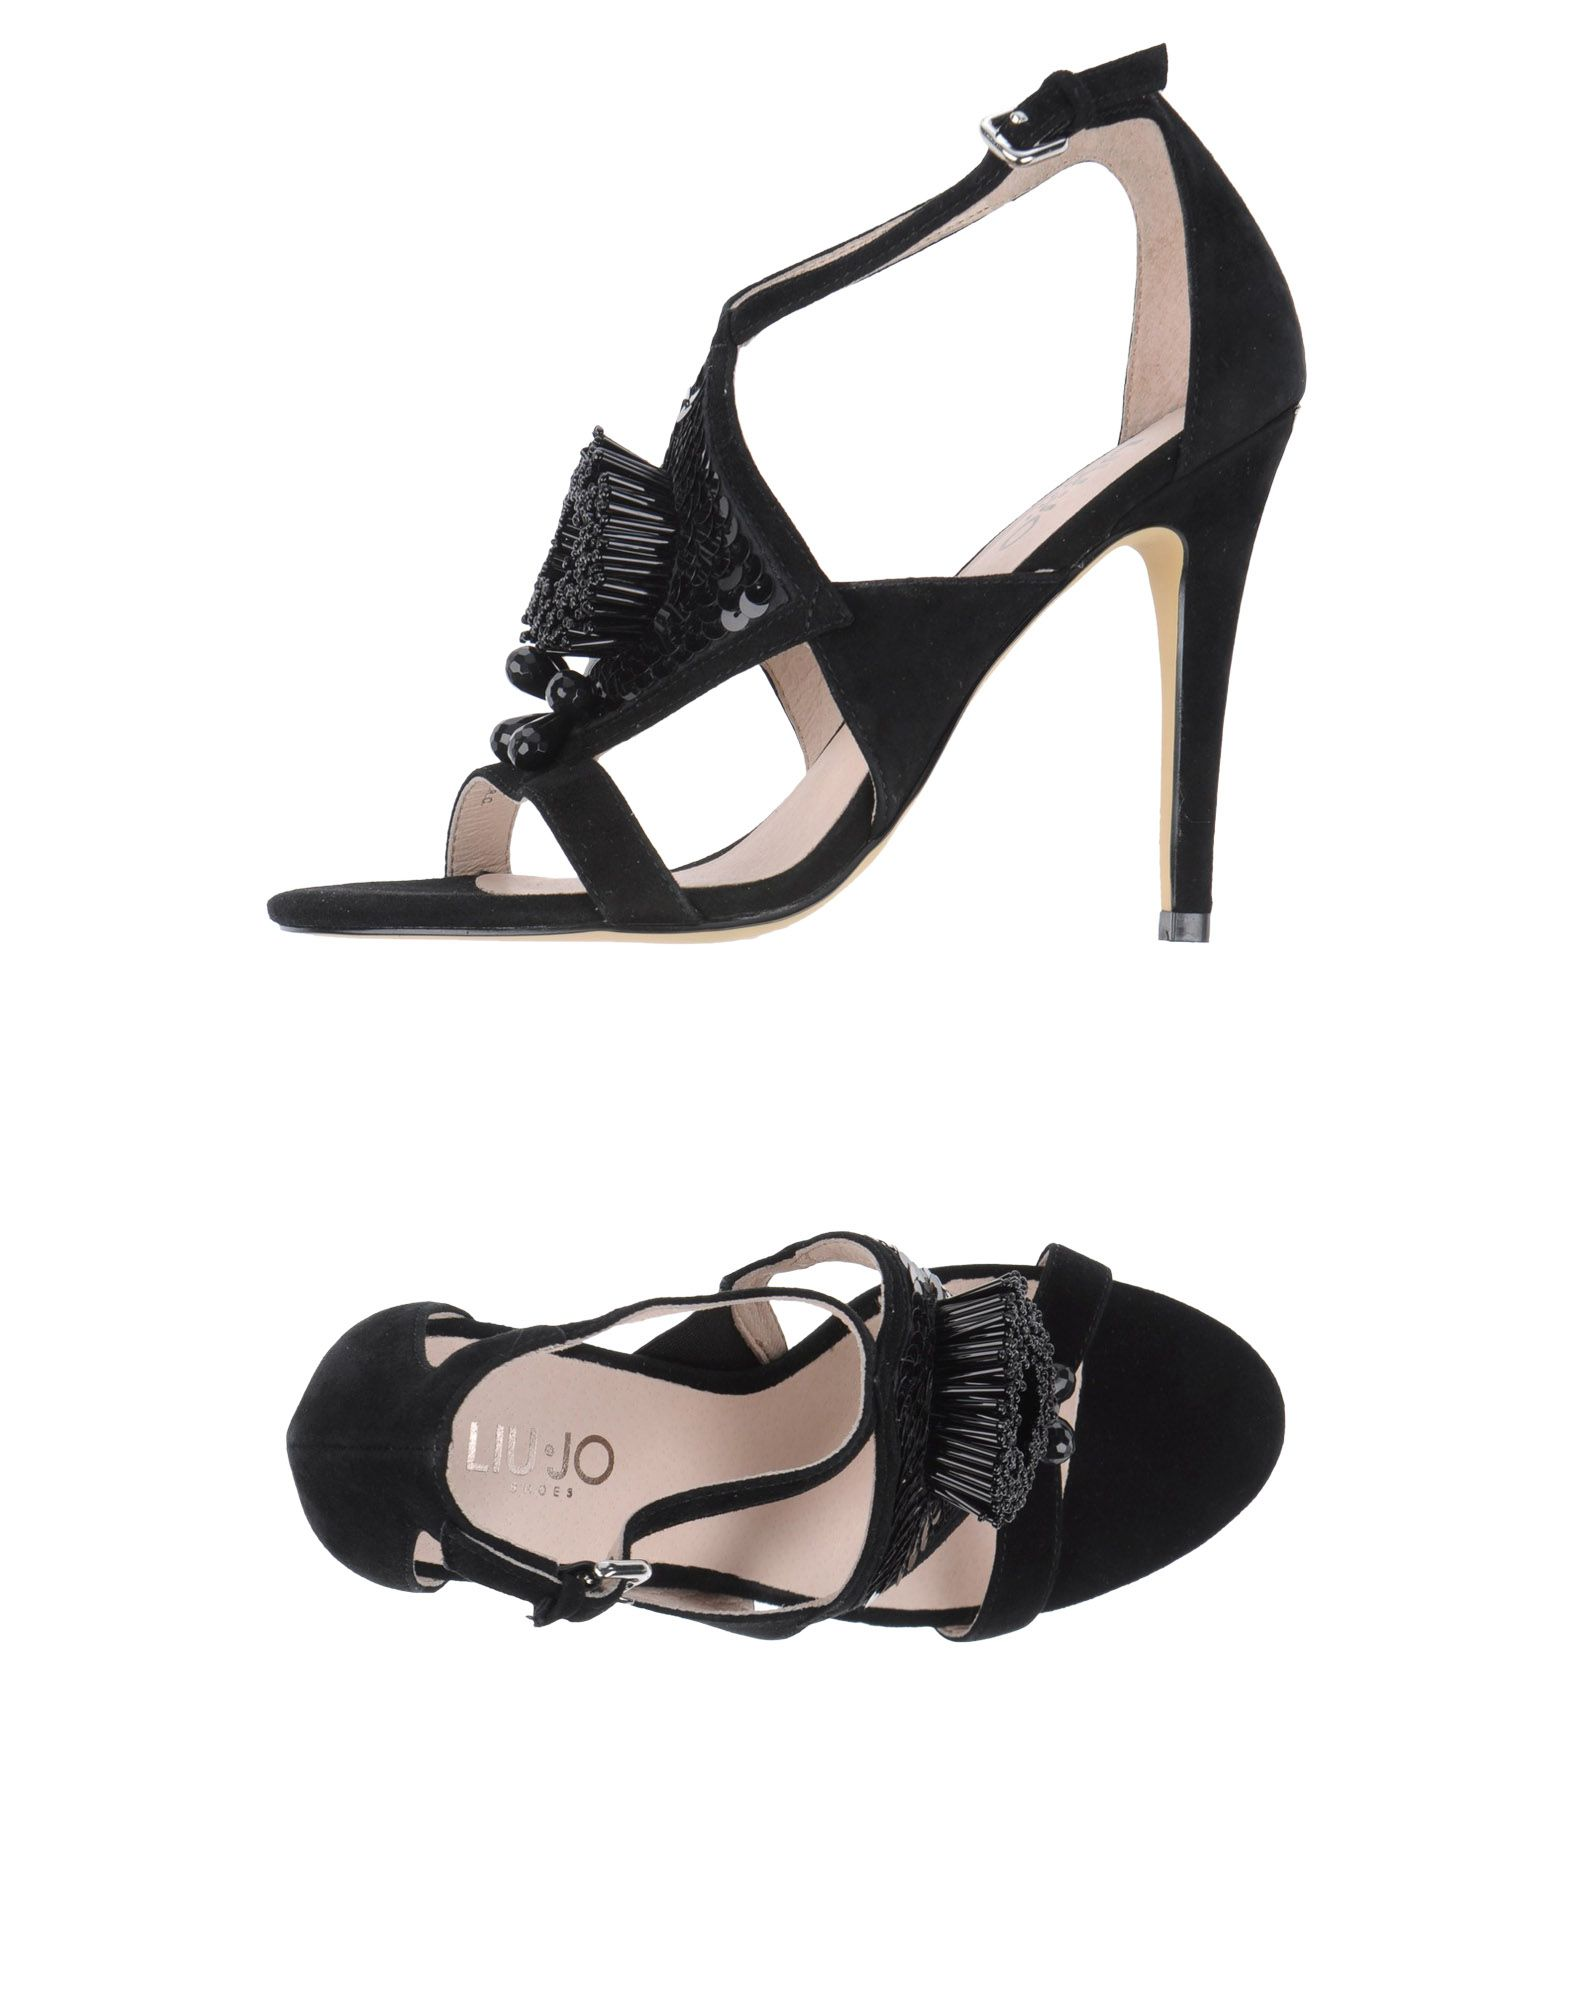 liu jo jeans sale, LIU •JO SHOES Sandals Black women Footwear,liu jo ...